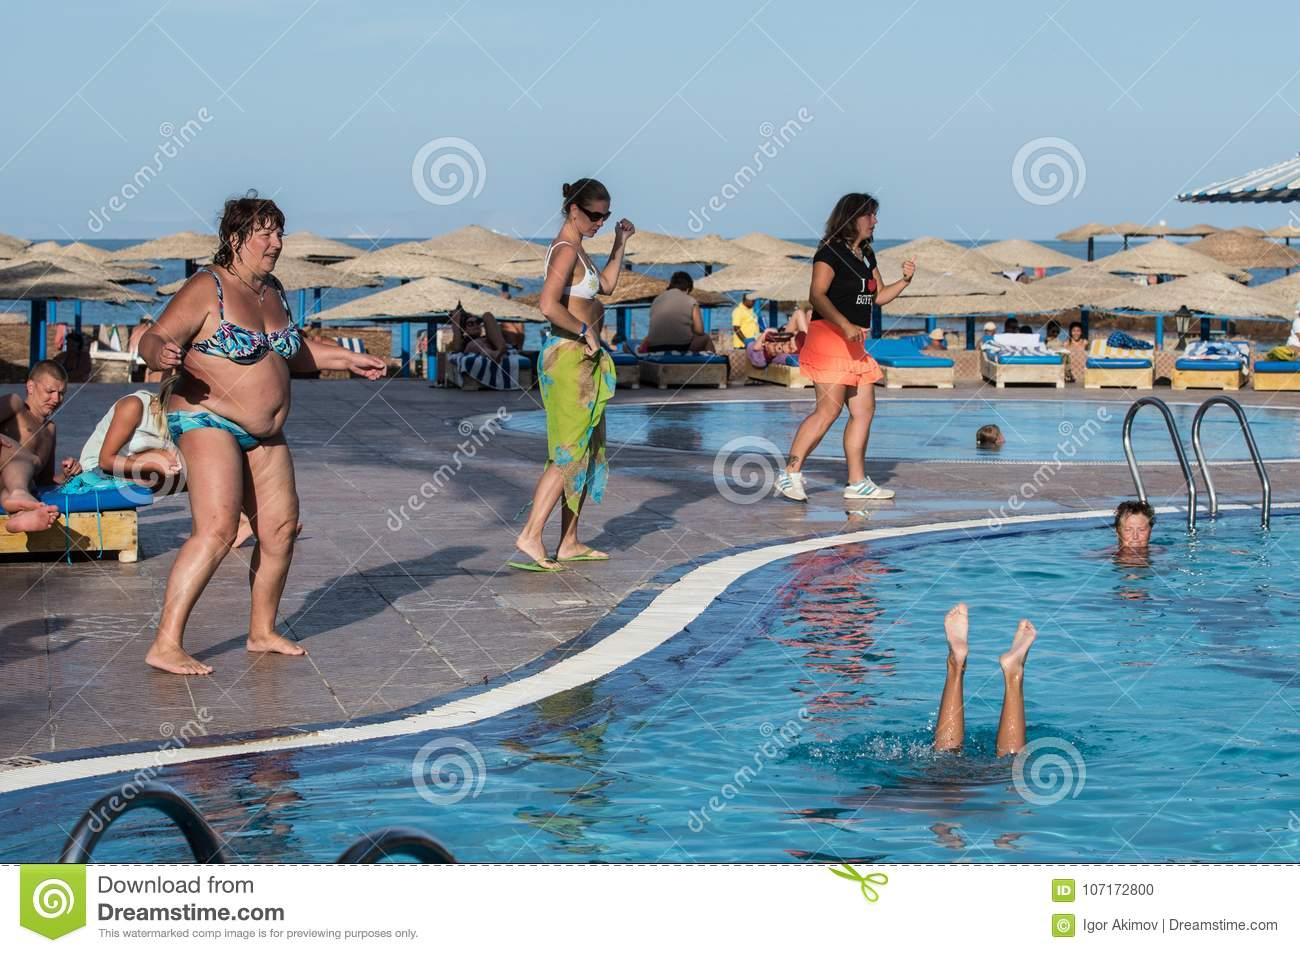 Tourists Are Sunning On The Beach In Hurghada In Egypt Editorial Image Image Of Summer Recreation 107172800